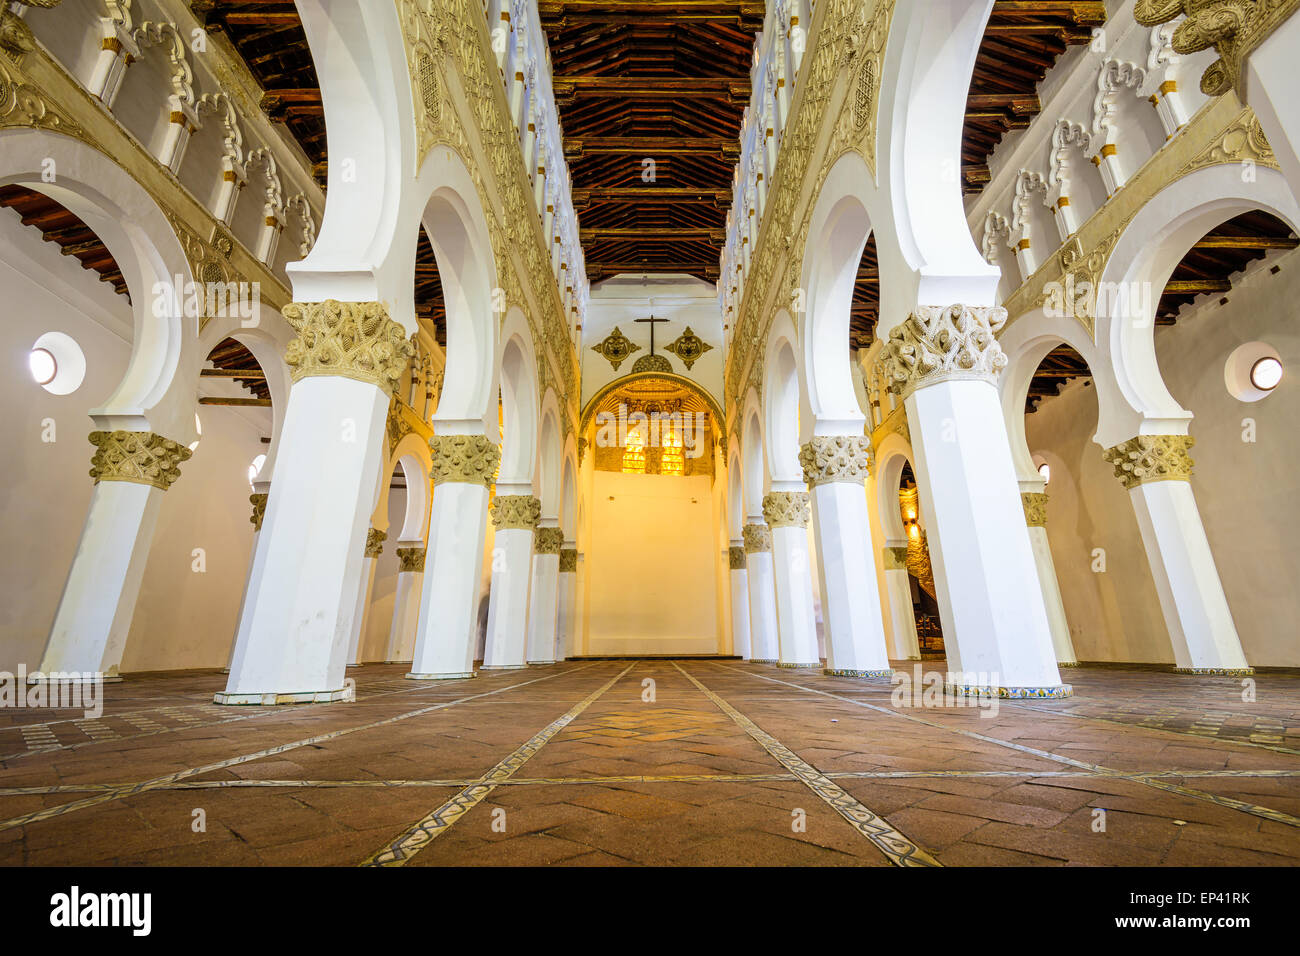 Eglise Santa Maria la Blanca à Tolède, Espagne, oiginally connu sous le nom de Ibn 2888 Synagogue. Photo Stock